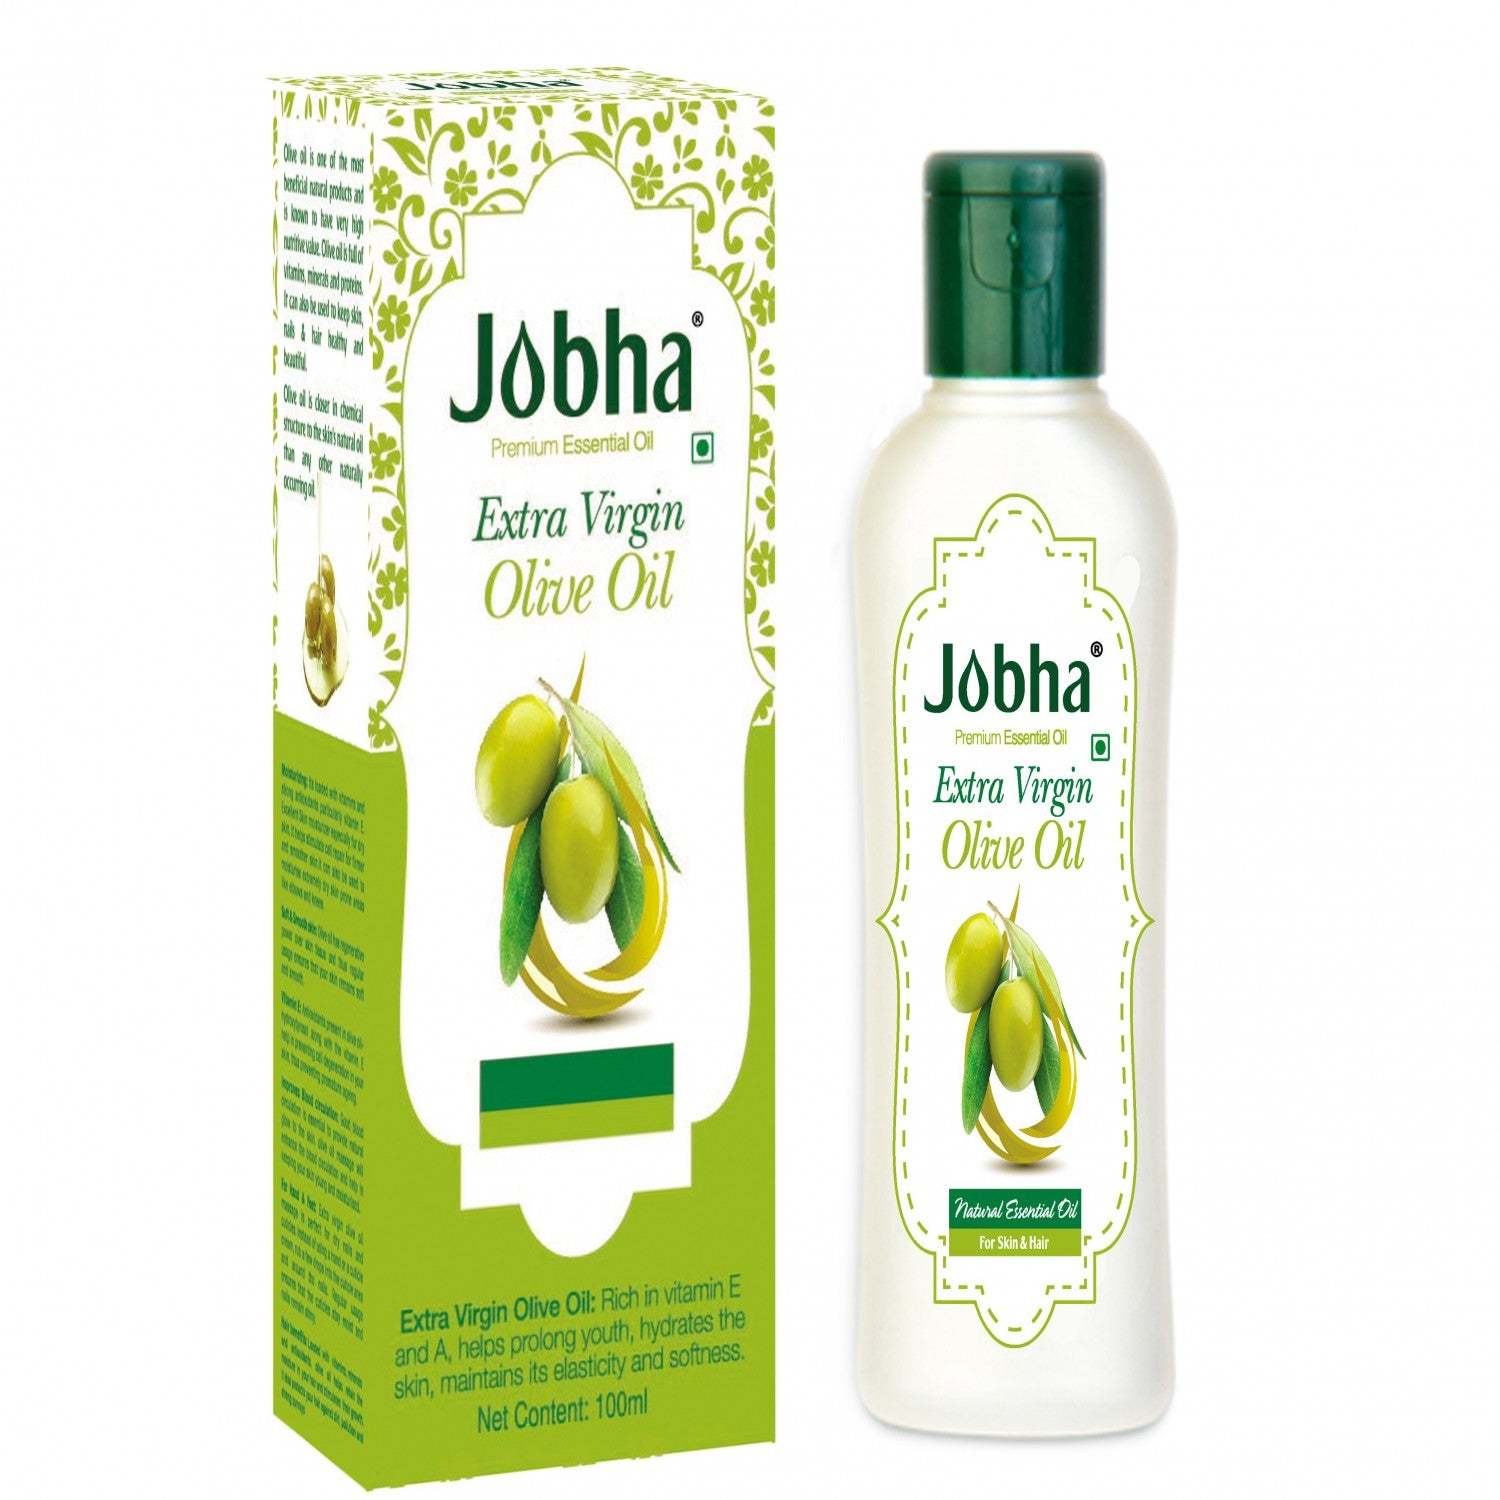 Jobha Extra Virgin Olive Oil 100 ml get best offers deals free and coupons online at buythevalue.in